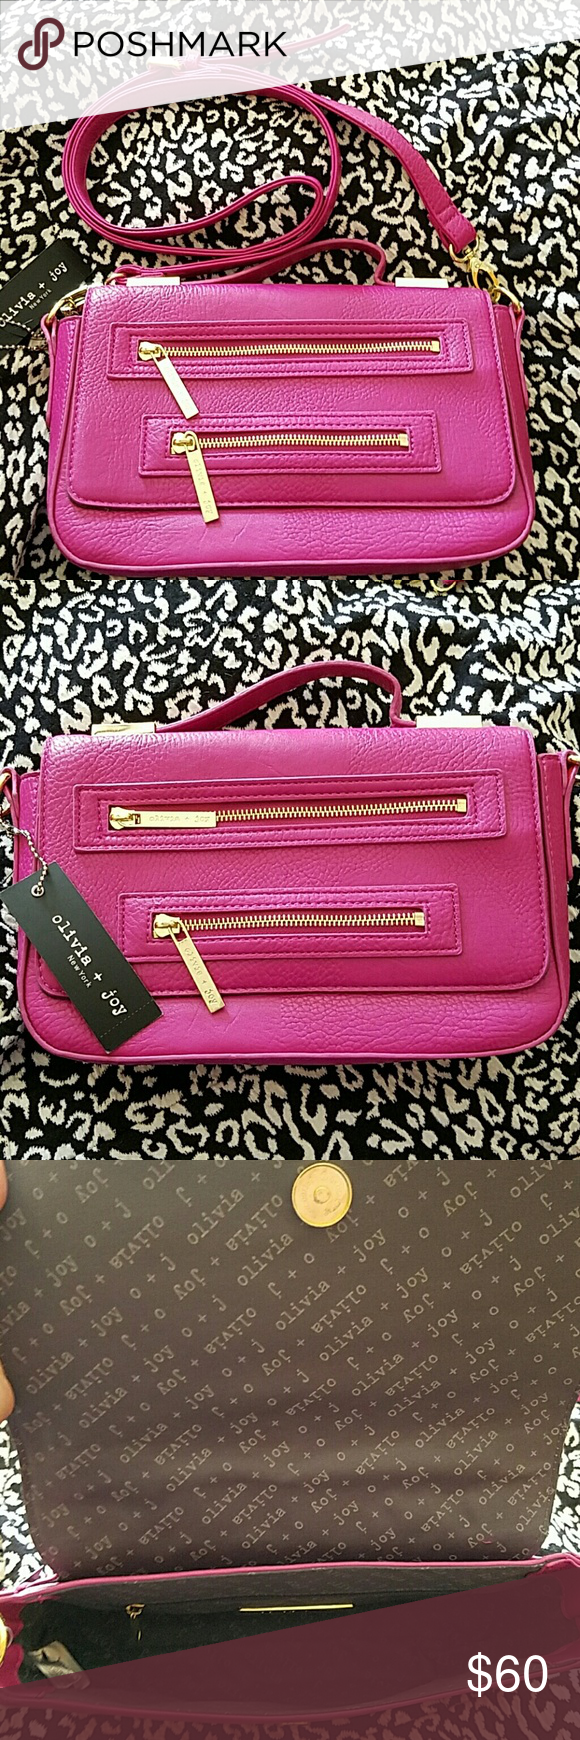 BNWT!! Gorgeous Olivia + Joy Purse Magenta colored cutie with gold zippers and detailing. Comes with a long strap to concert into a crossbody.  10 ? 6 1/2 strap is approx 48 in long. Olivia + Joy Bags Crossbody Bags